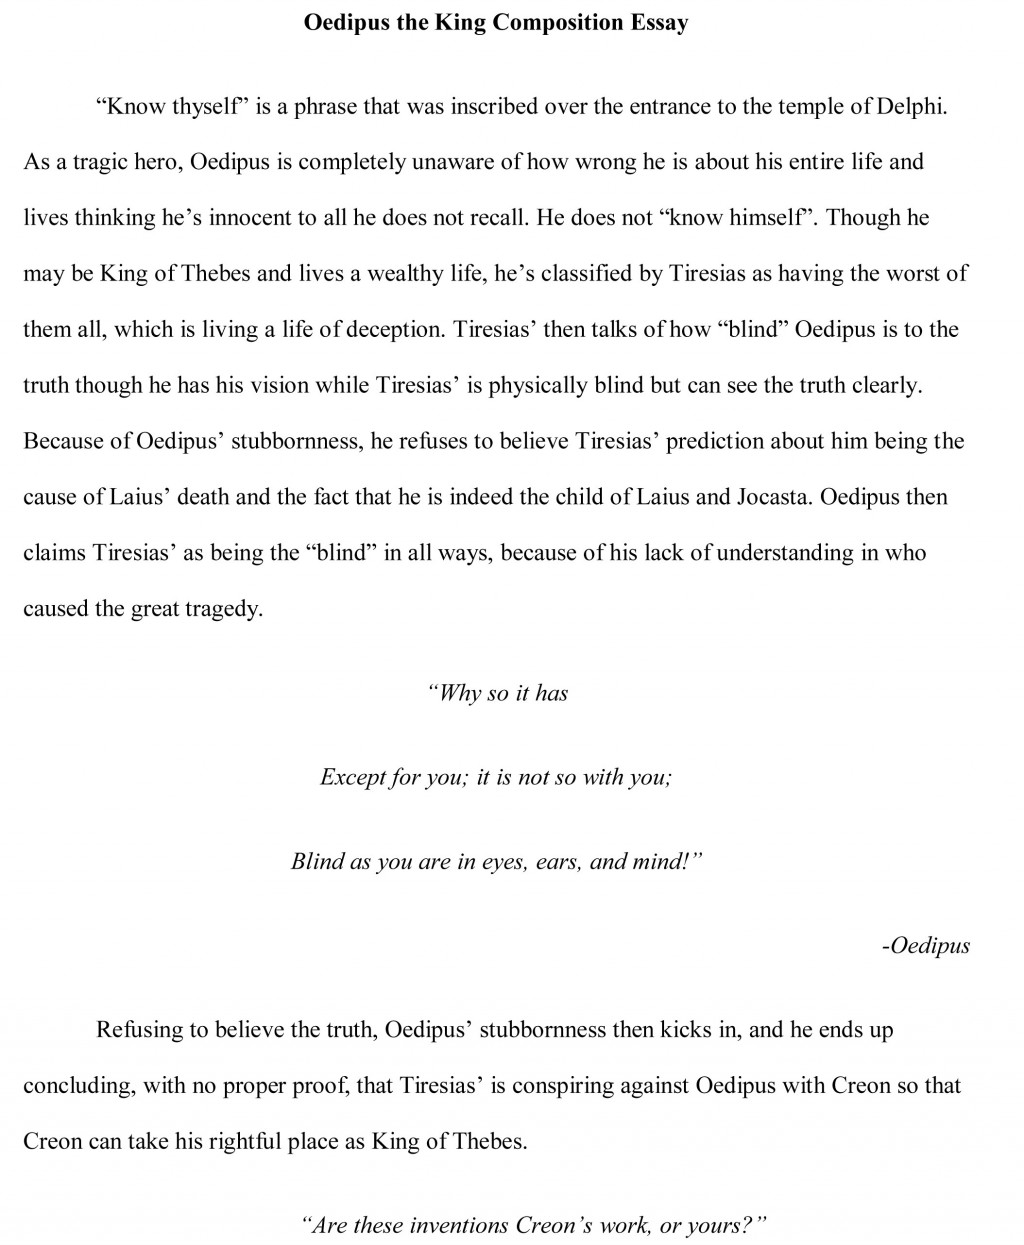 003 Oedipus Essay Free Sample Research Paper 8th Grade Science Stunning Outline Large